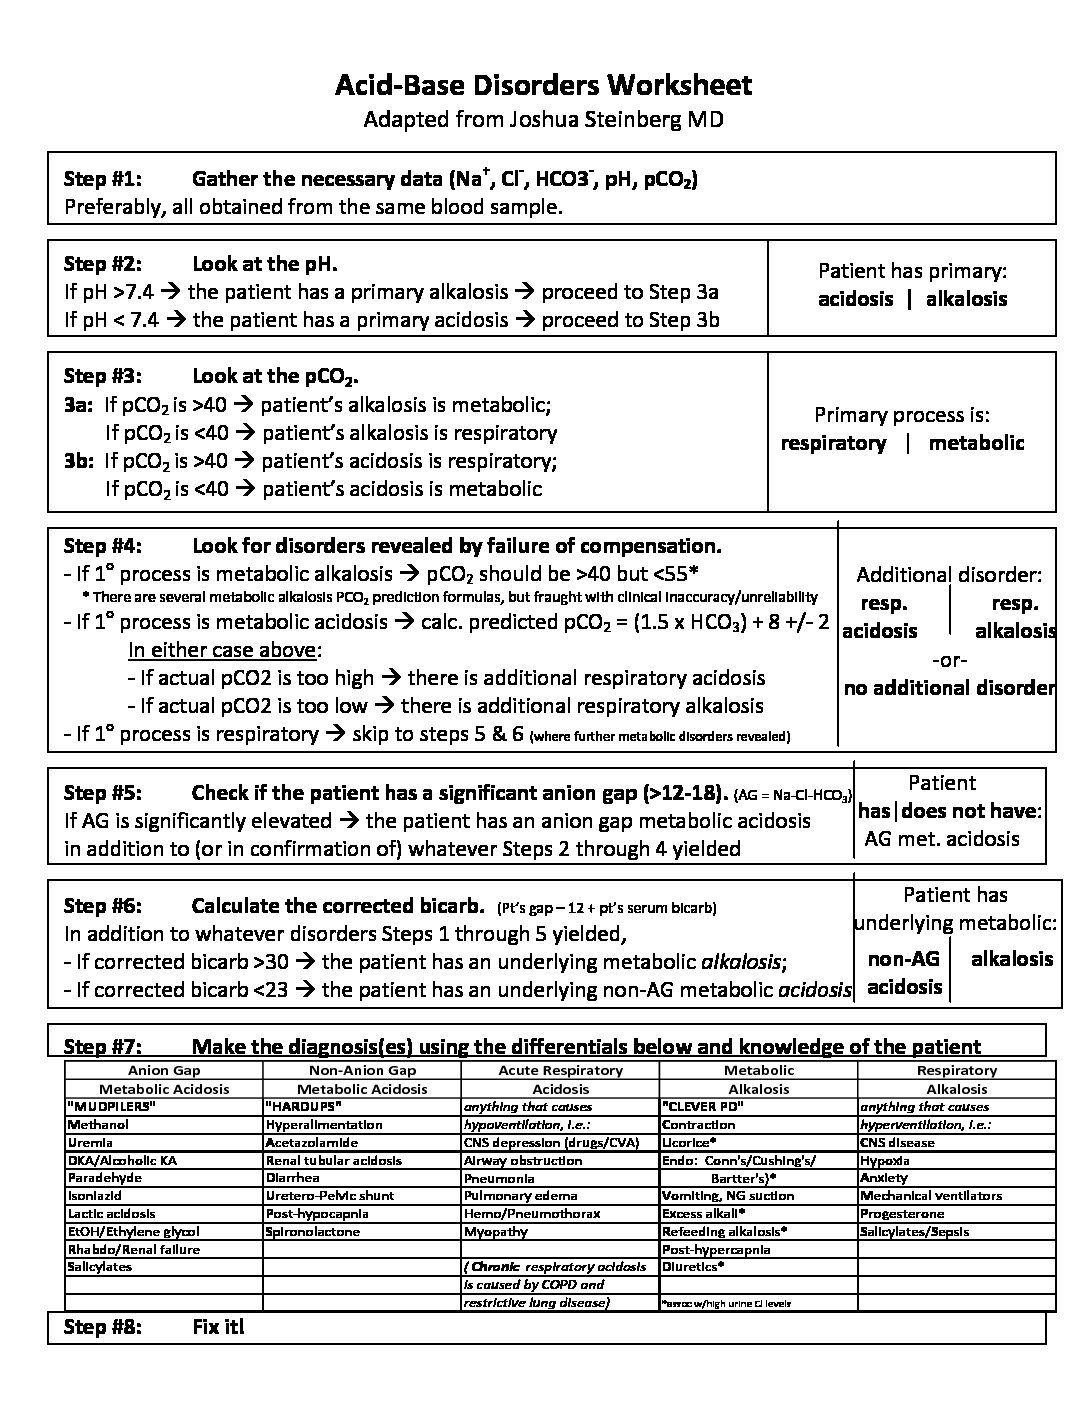 Worksheets Acid And Base Worksheet a definitive acid base disorders worksheet